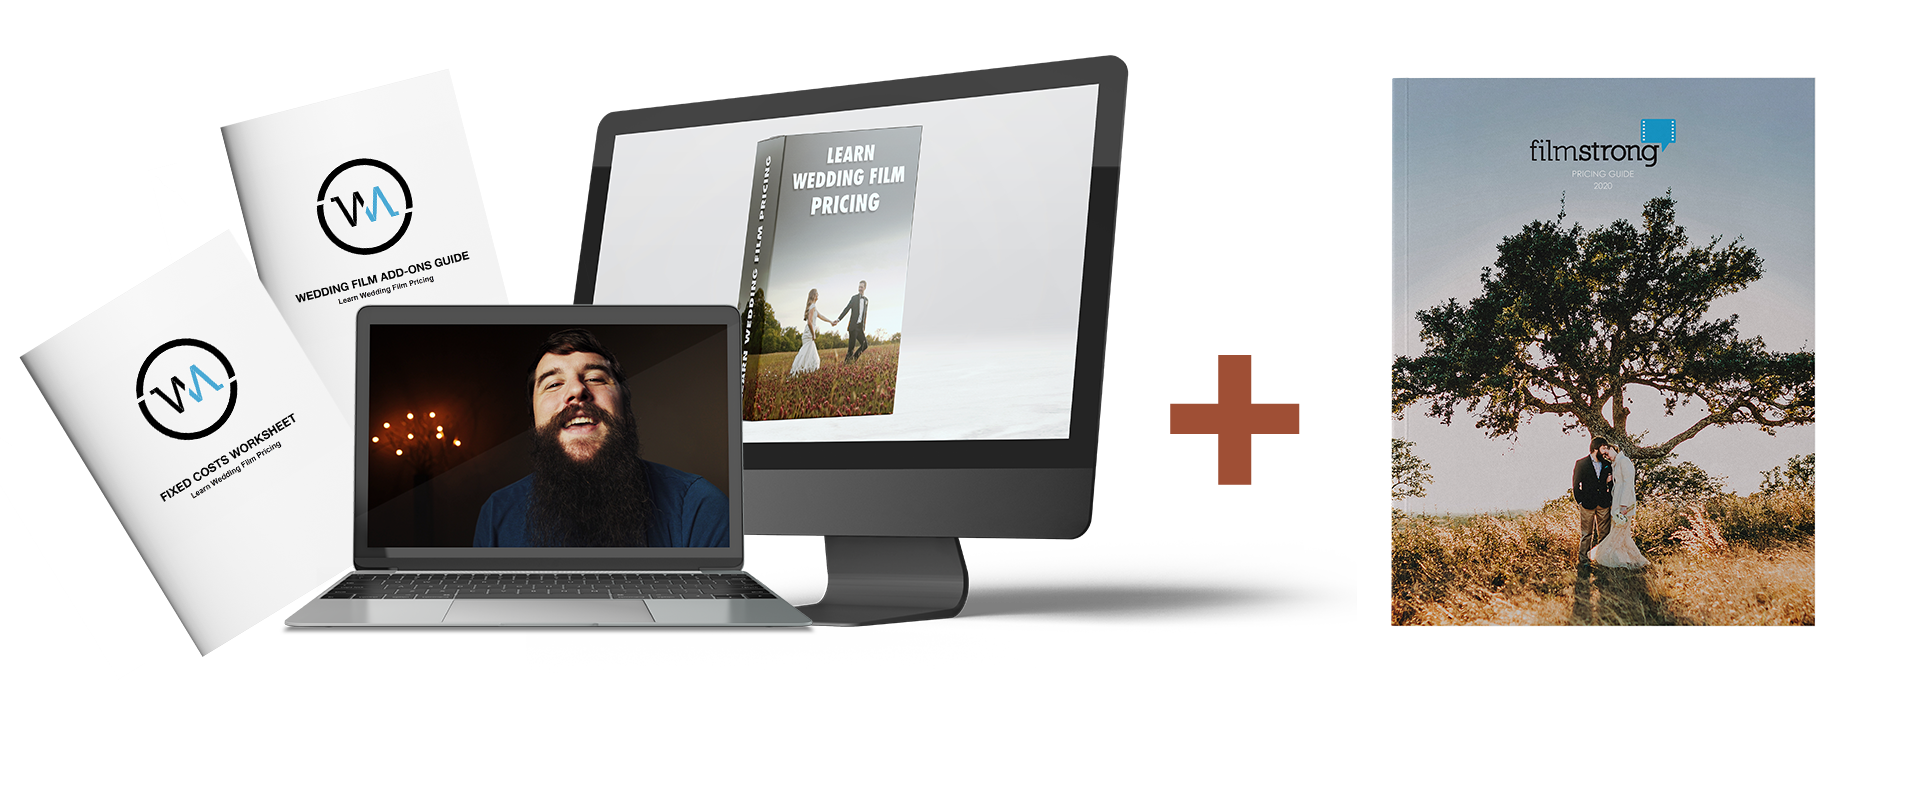 Learn Wedding Film Pricing and Pricing Template